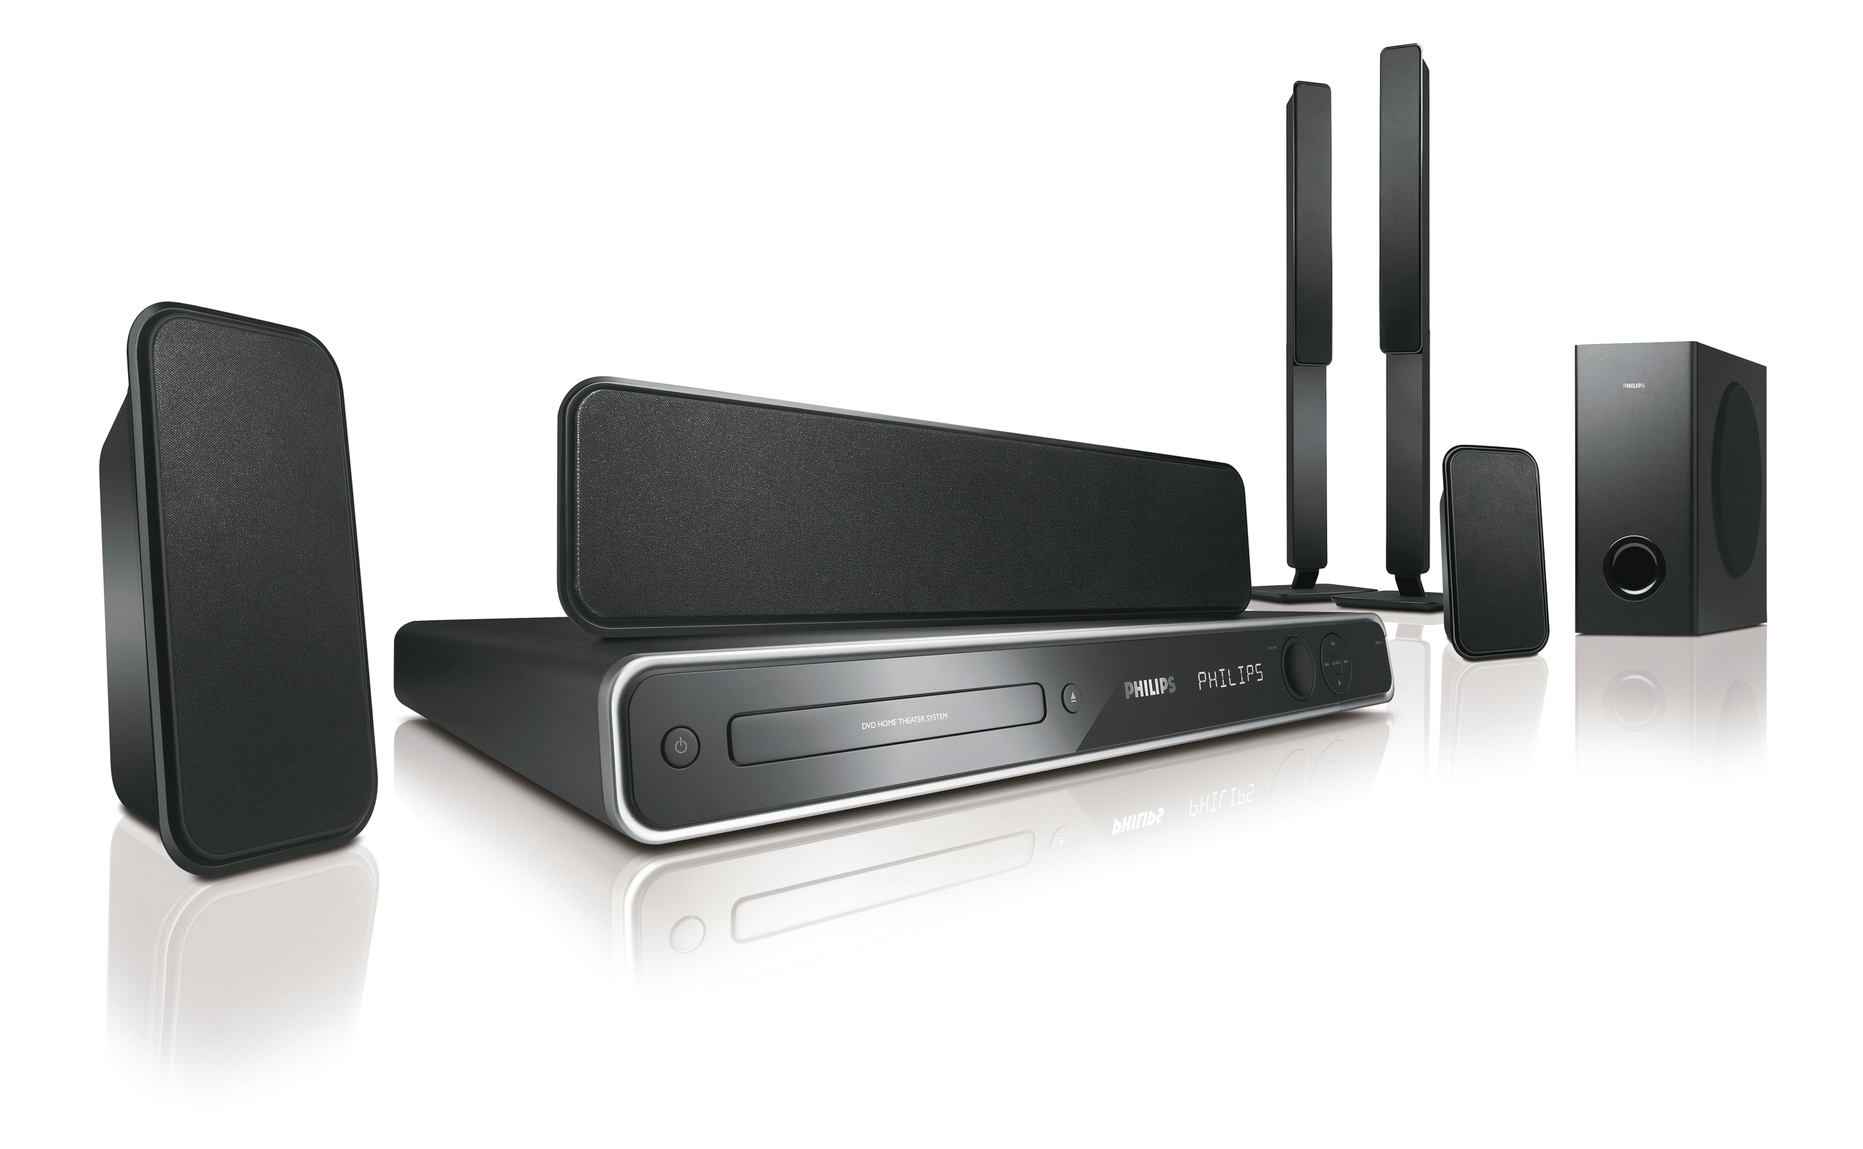 wireless home philips wireless home theater system. Black Bedroom Furniture Sets. Home Design Ideas